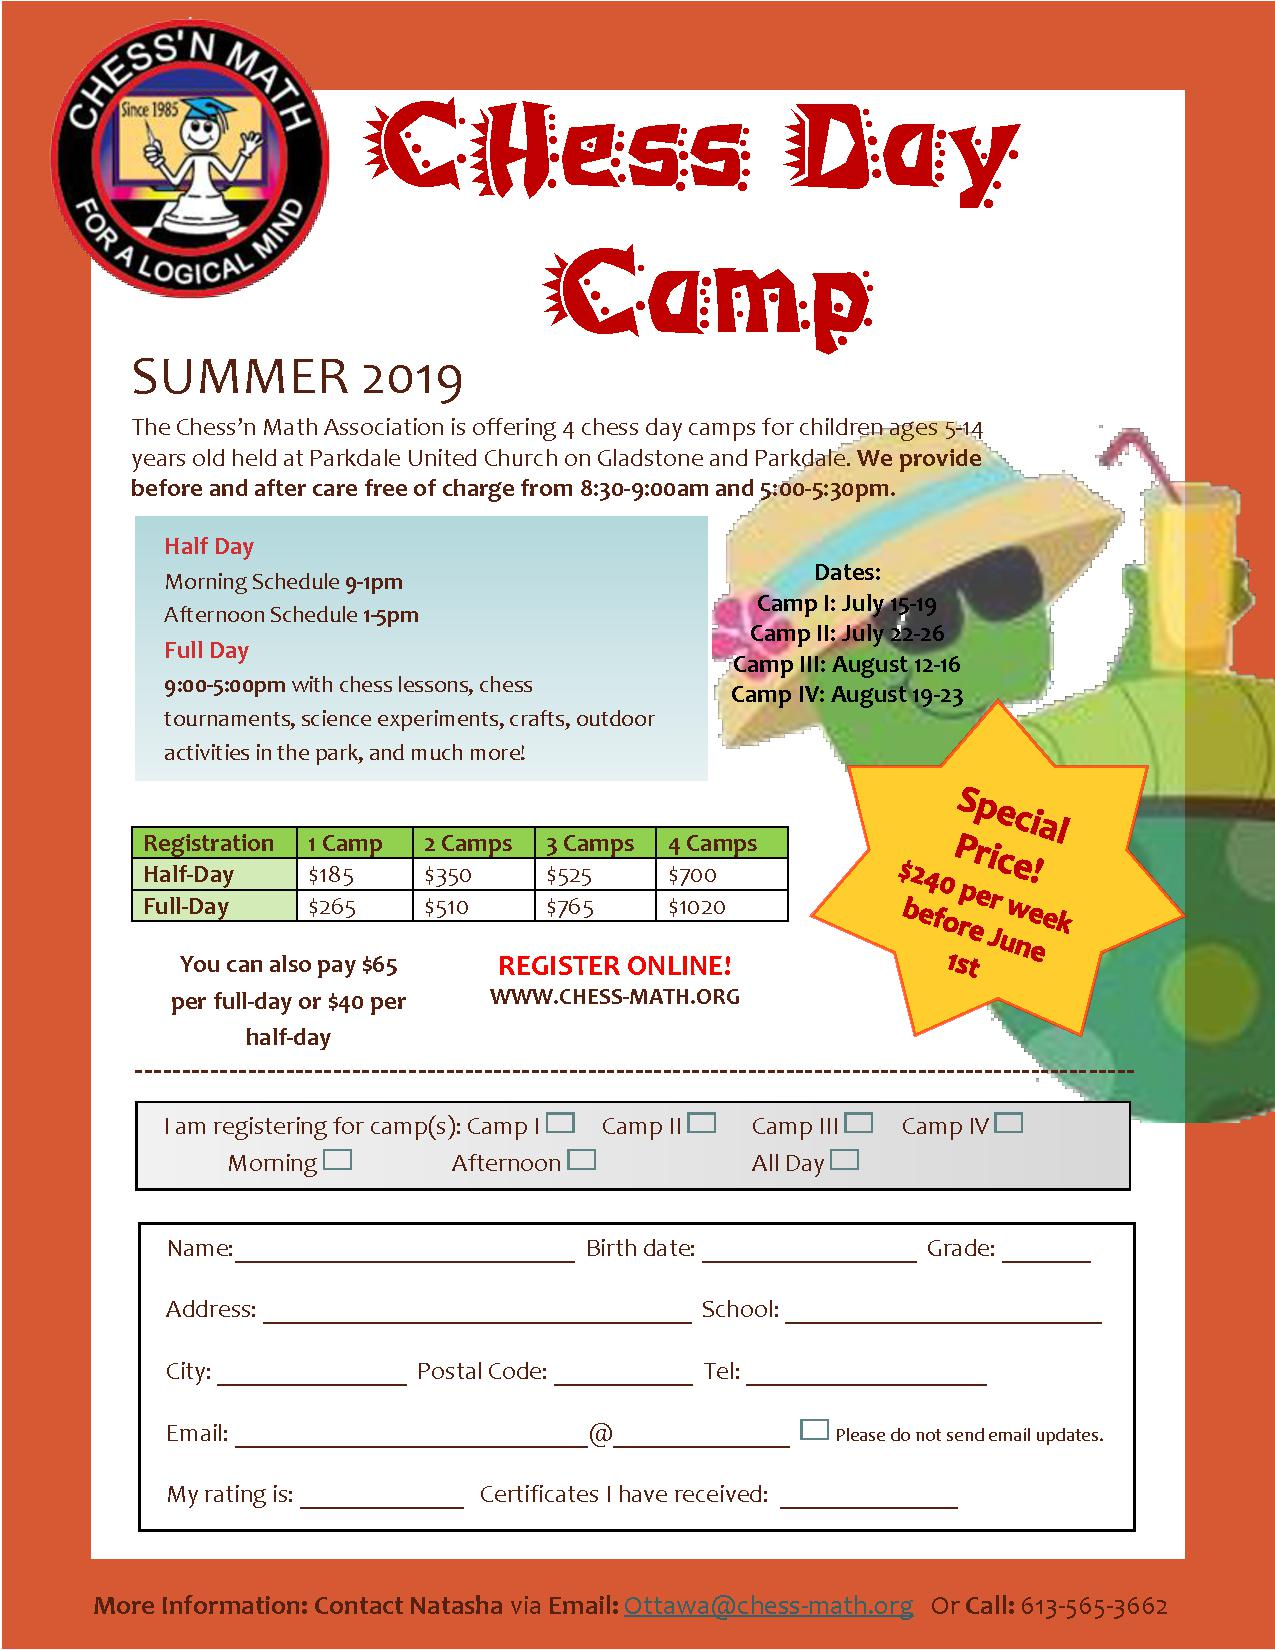 Ottawa Summer Camp 2019